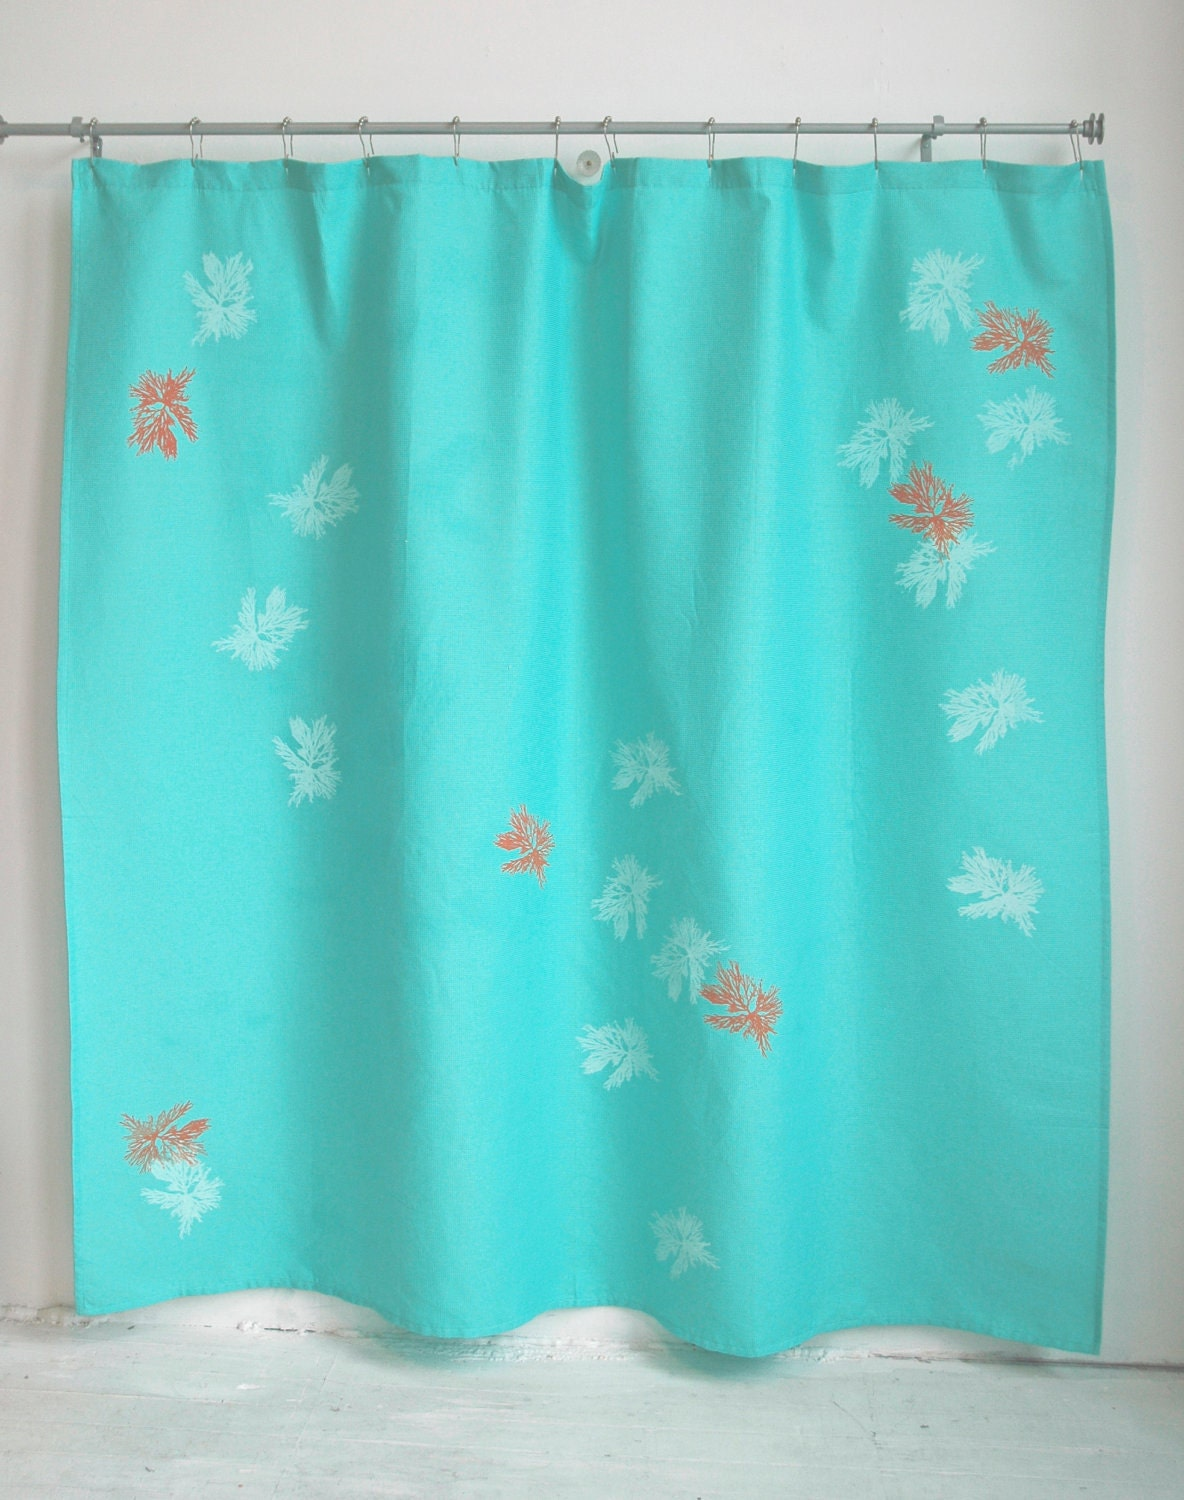 Curtains Turquoise White Curtains Blinds